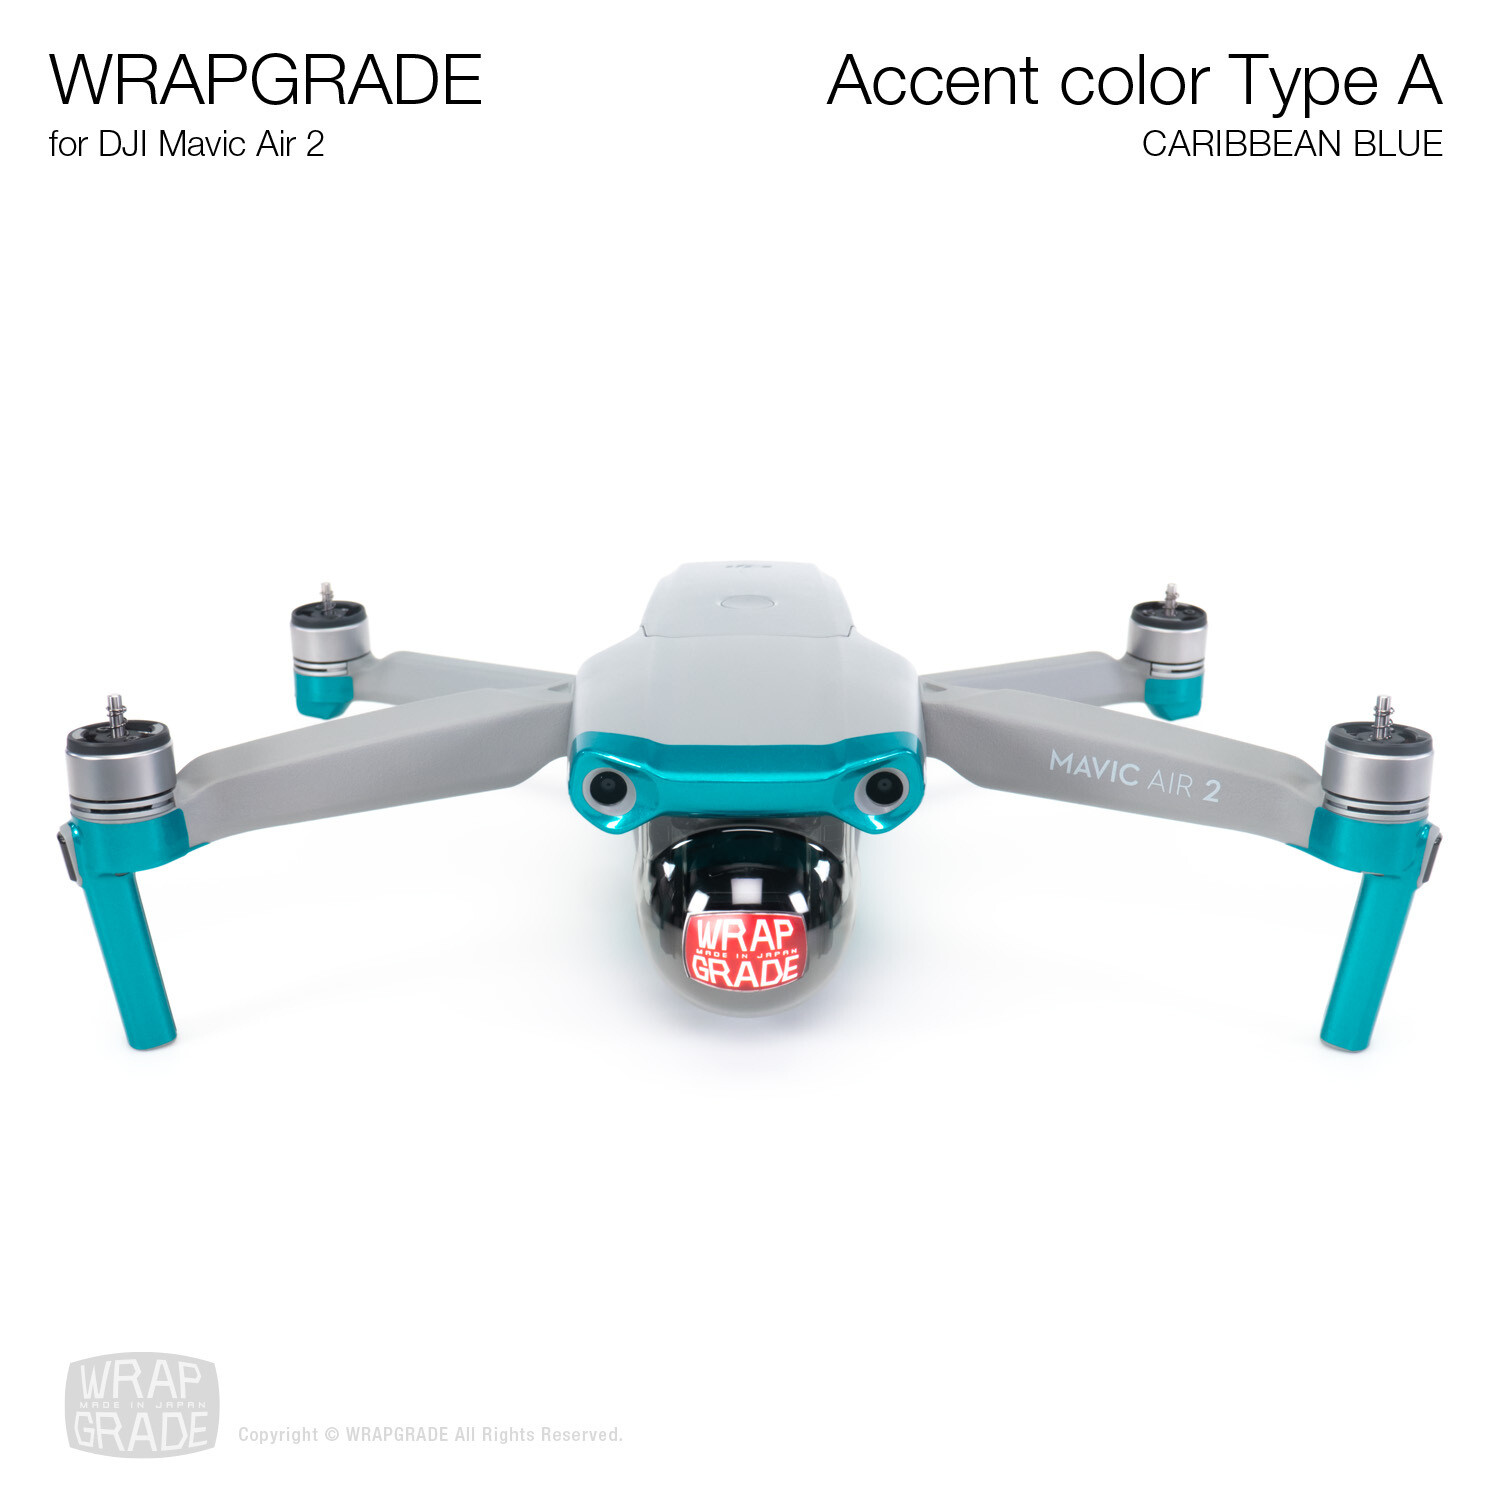 Wrapgrade for DJI Mavic Air 2 | Accent Color A (CARIBBEAN BLUE)